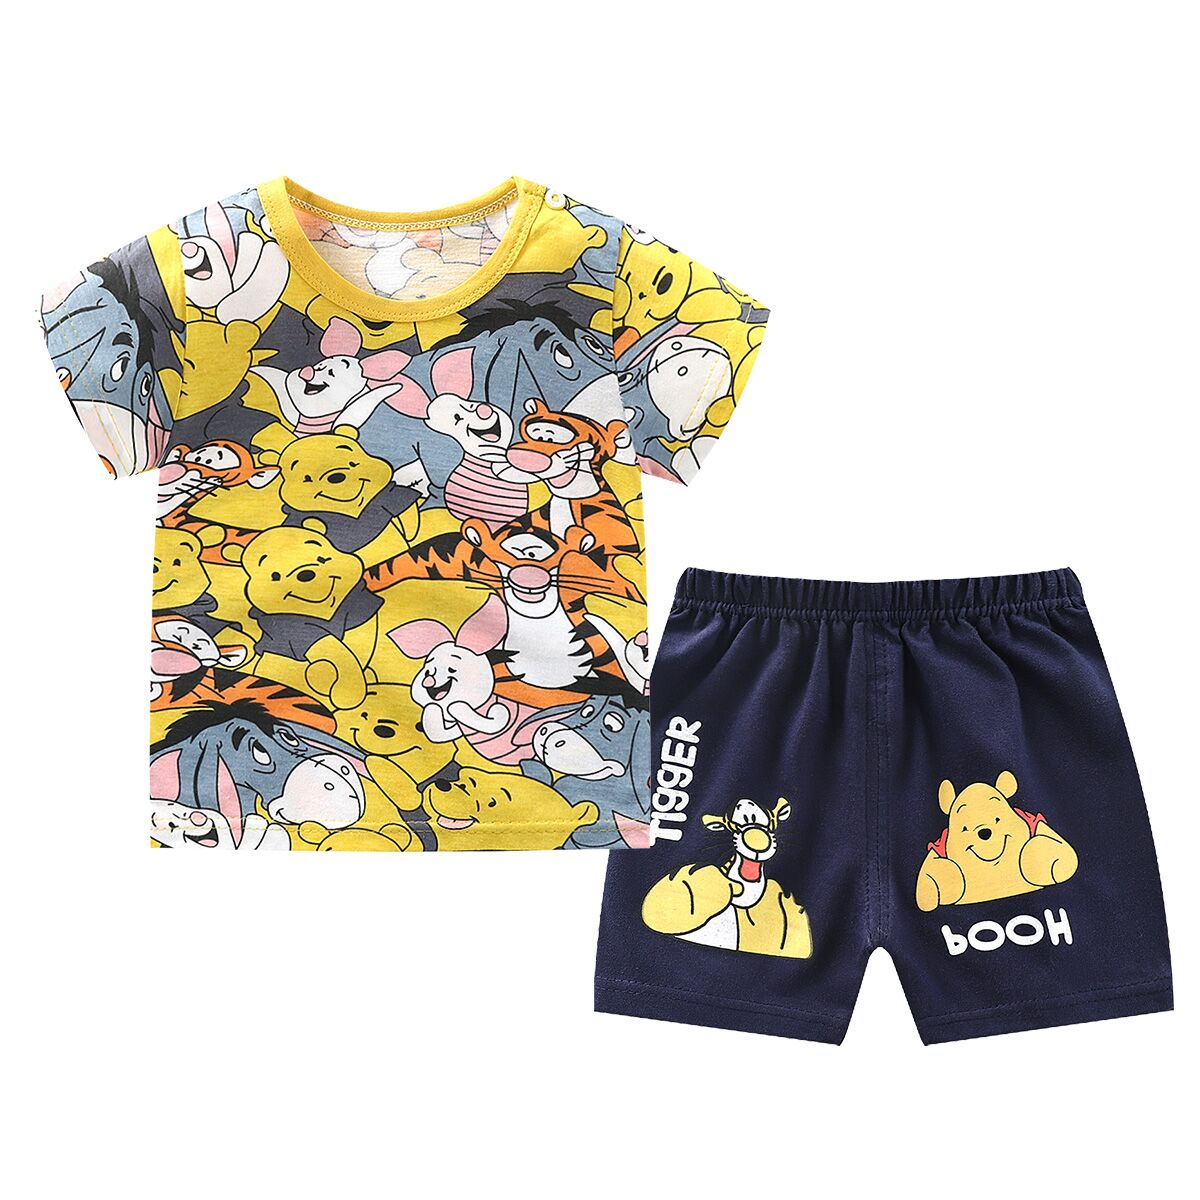 Brand Designer Cartoon Clothing Mickey Mouse Baby Boy Summer Clothes T-shirt+shorts Baby Girl Casual Clothing Sets 3